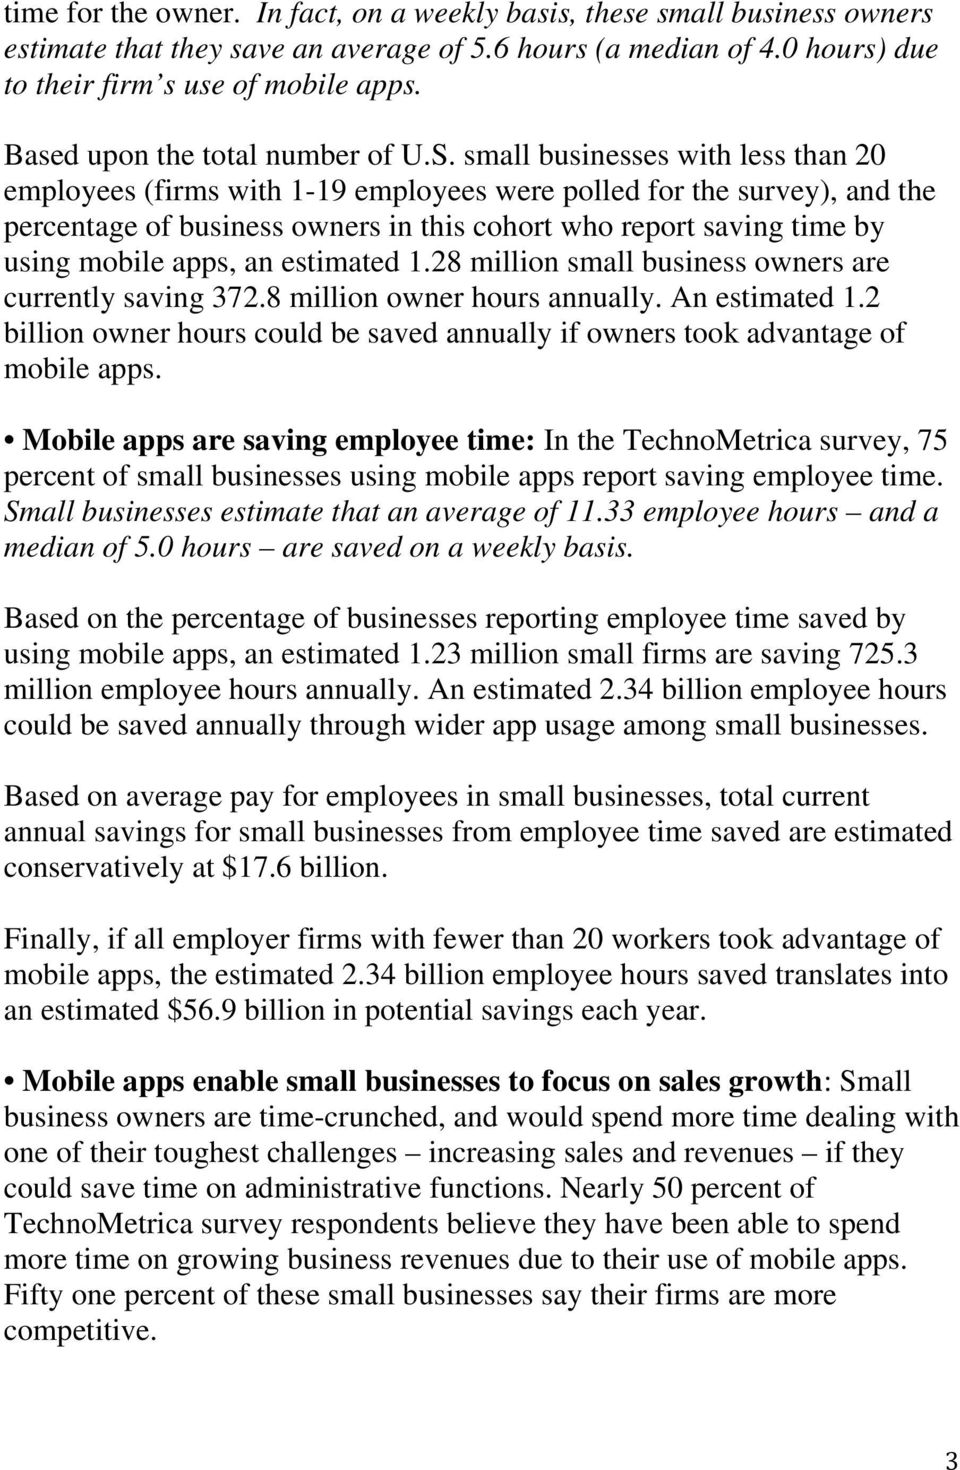 small businesses with less than 20 employees (firms with 1-19 employees were polled for the survey), and the percentage of business owners in this cohort who report saving time by using mobile apps,